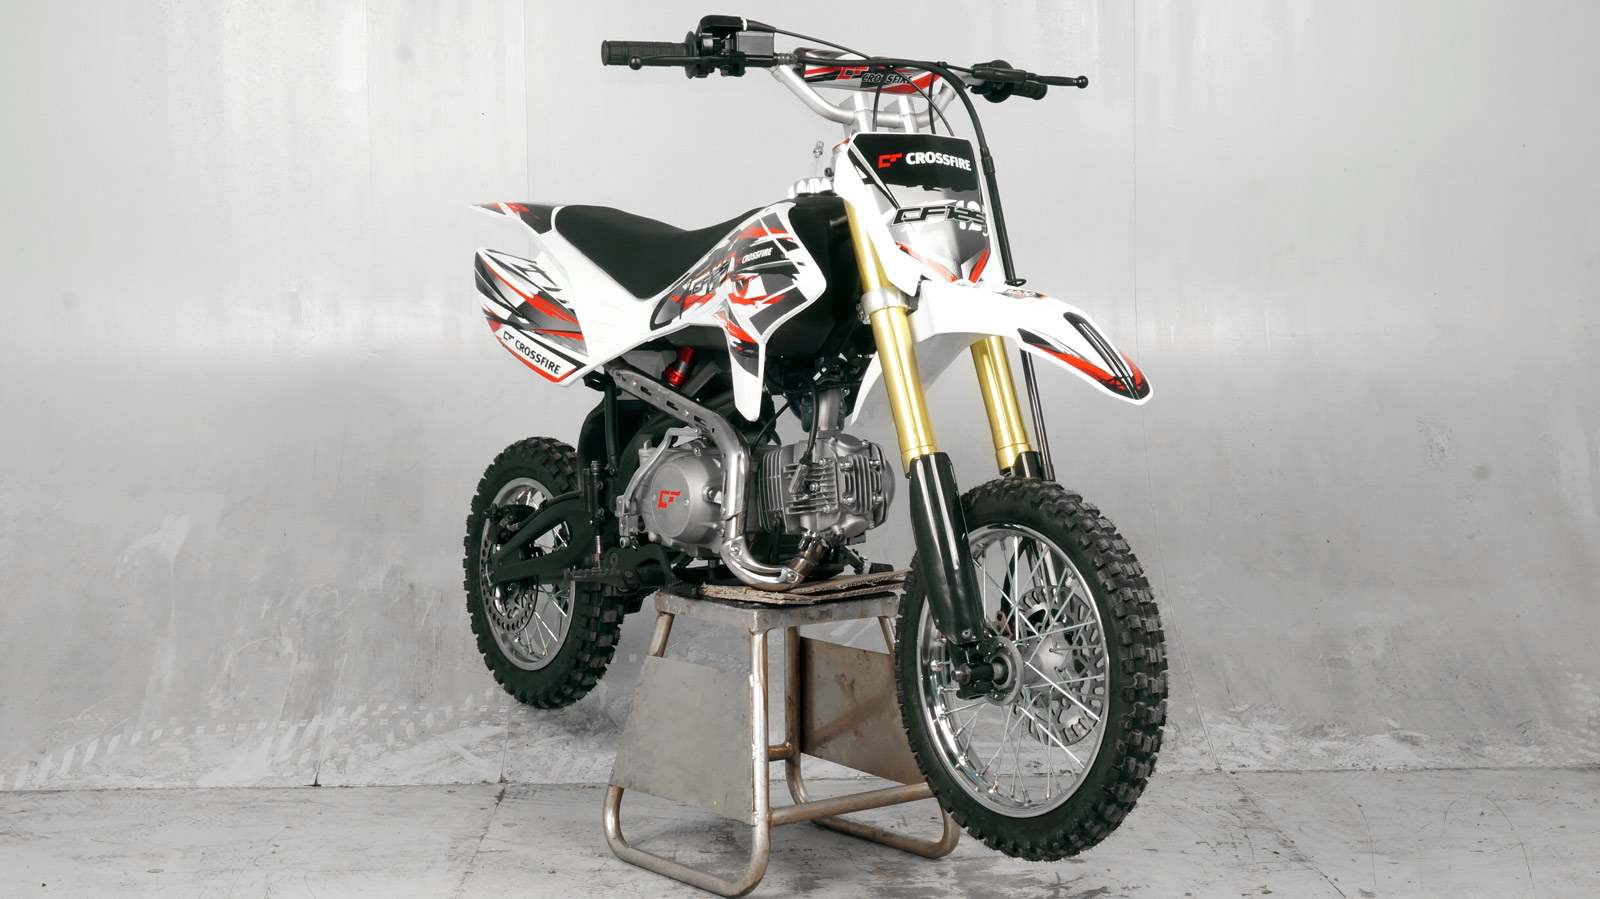 crossfire motorcycles cf125 125cc dirt bike. Black Bedroom Furniture Sets. Home Design Ideas